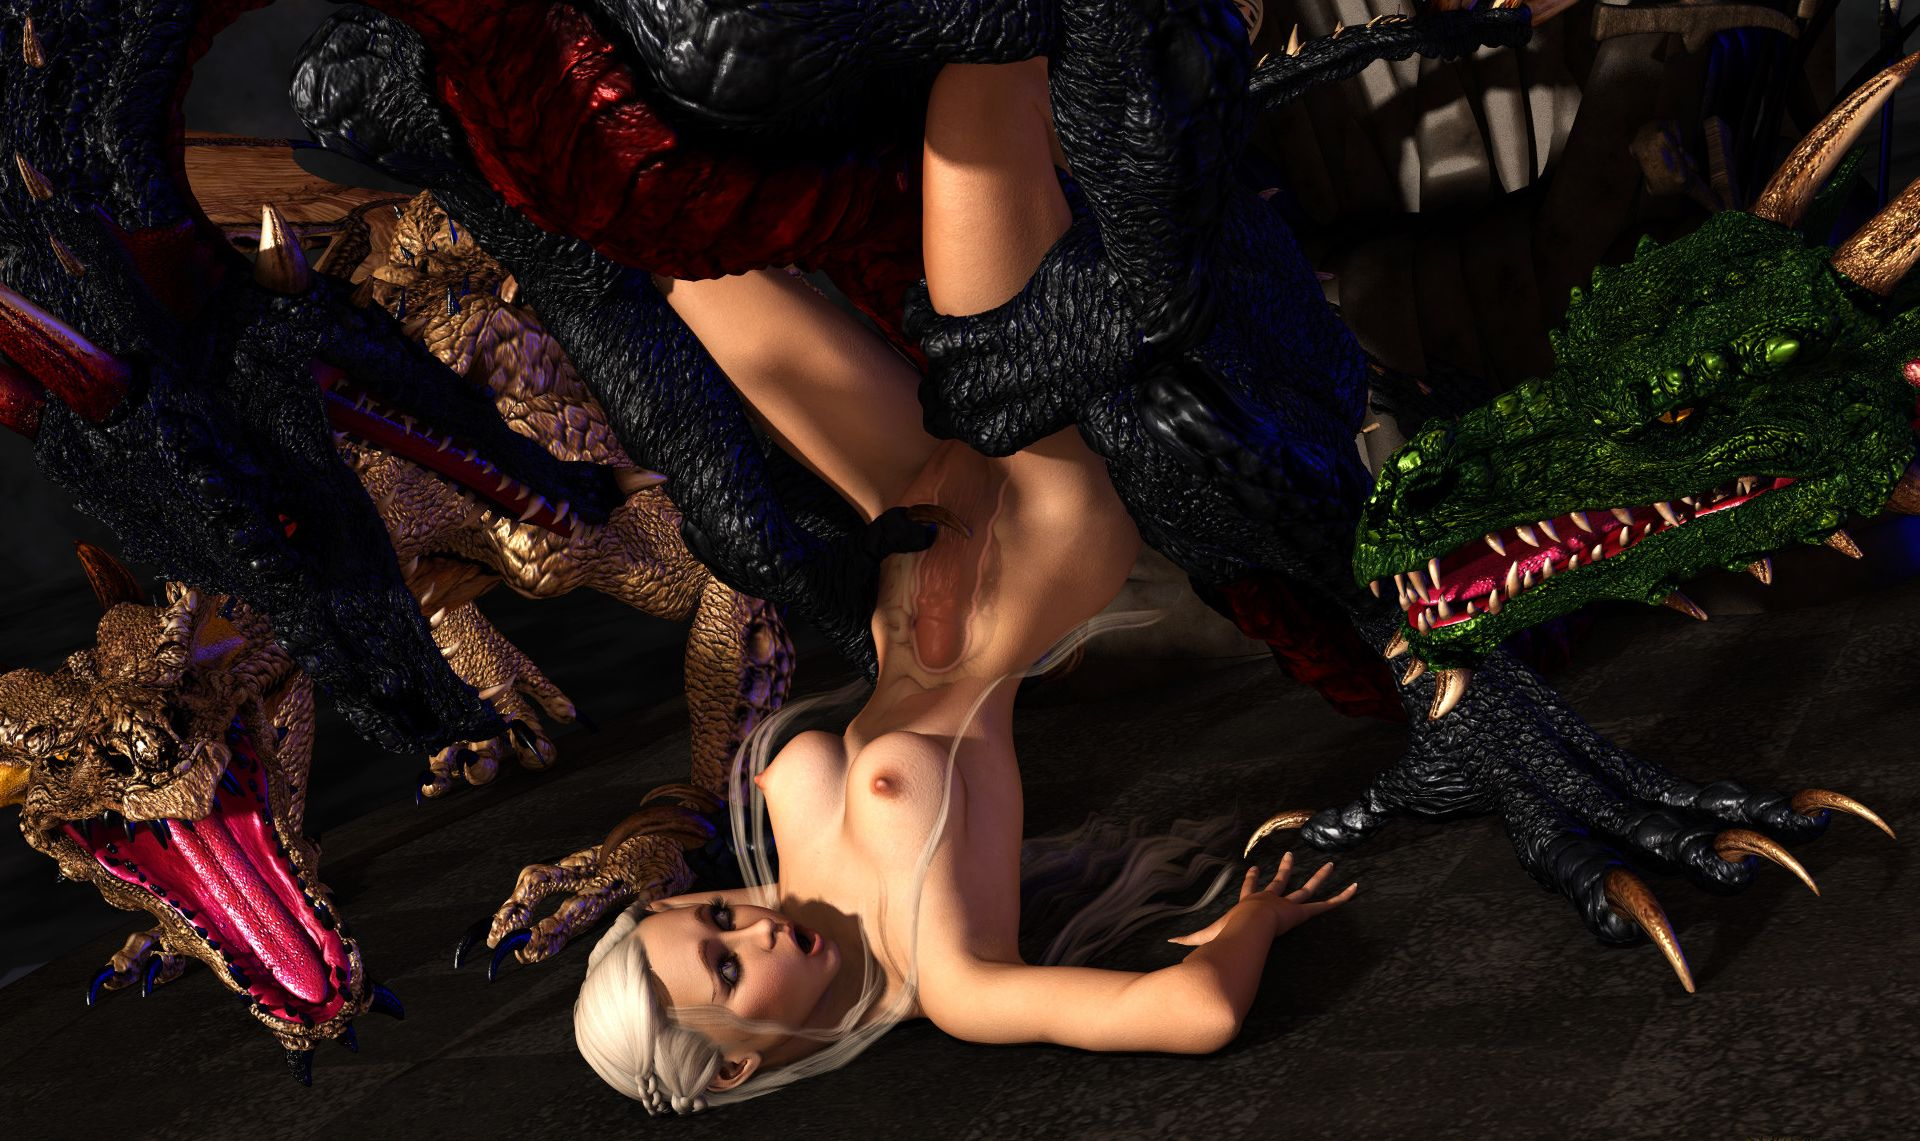 Games sex moment porn photo